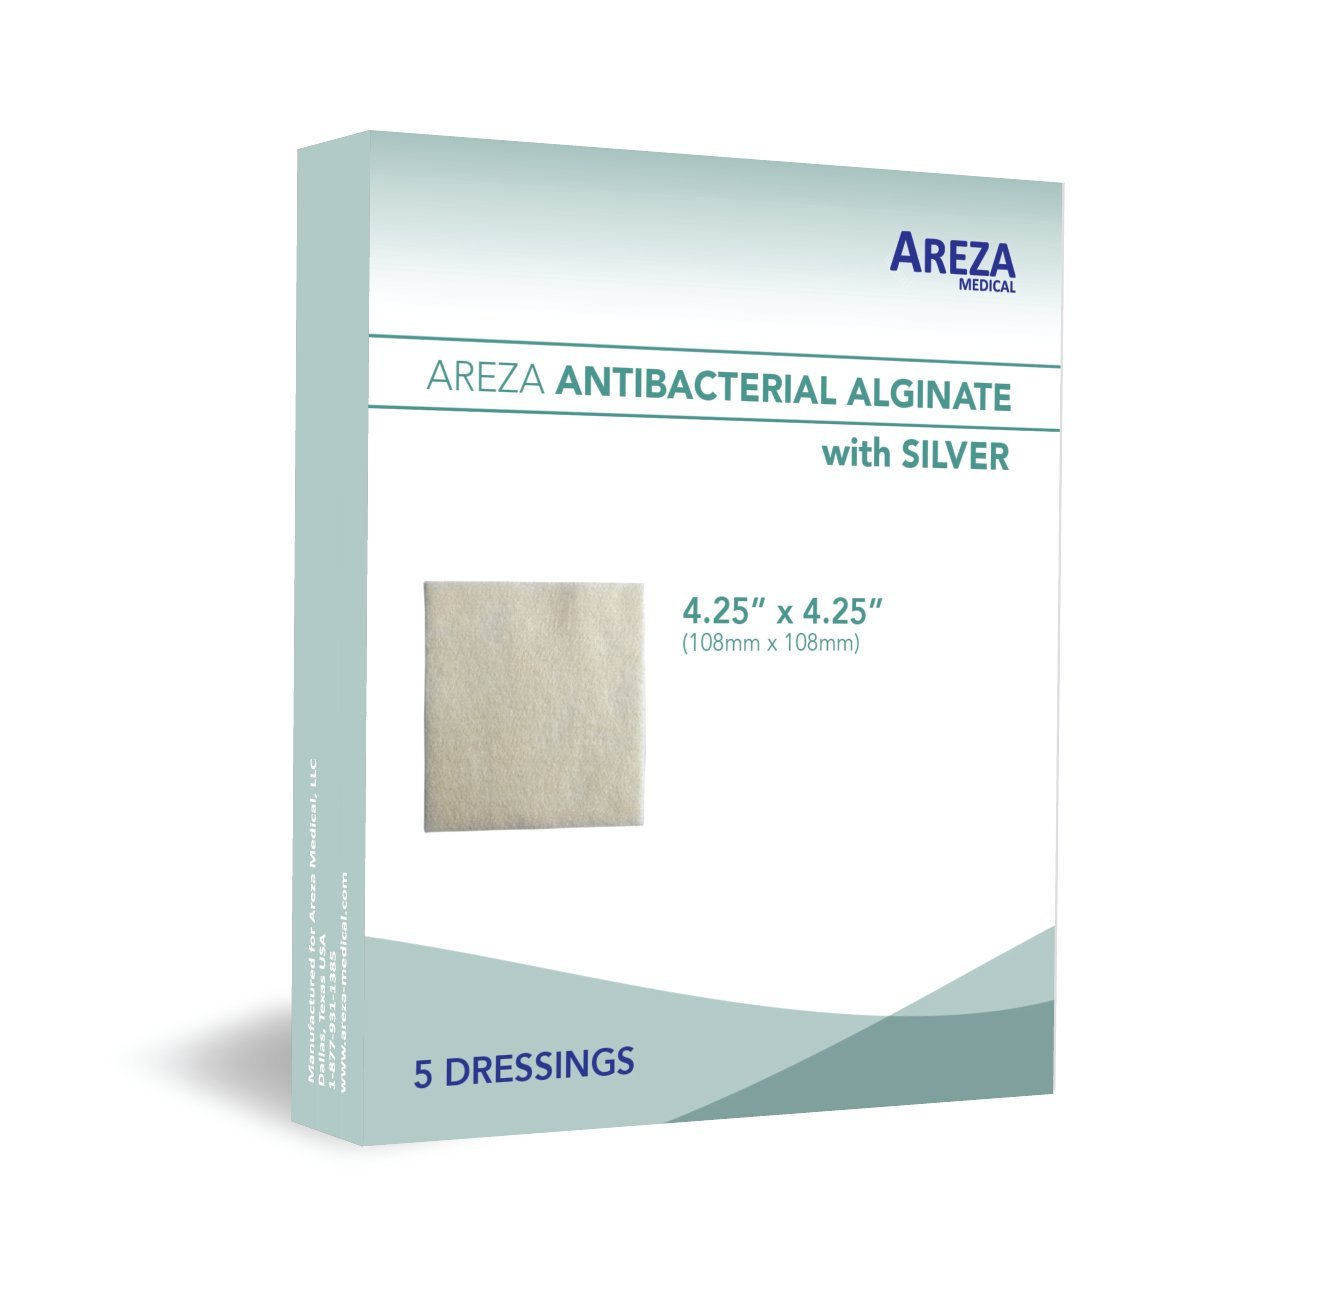 Silver Alginate (Antibacterial Alginate with Silver) 4.25''x4.25'' Sterile; 5 Dressings Per Box (1) (4.25'' X 4.25'') (1)